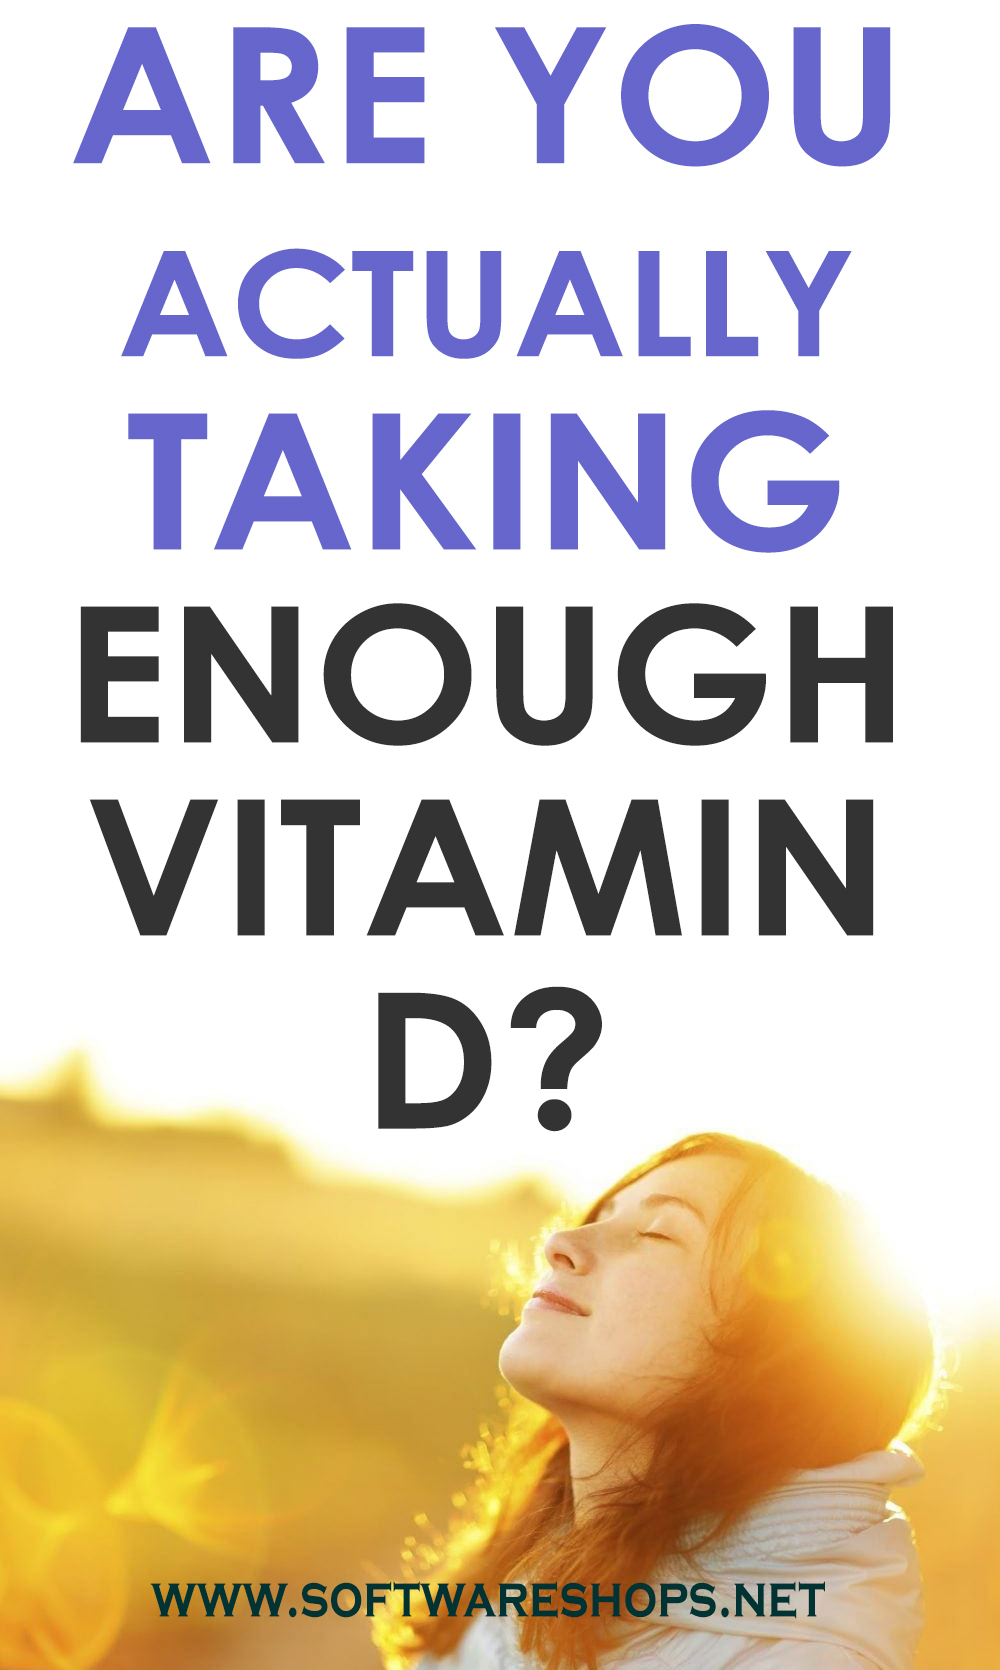 Are You Actually Taking Enough Vitamin D